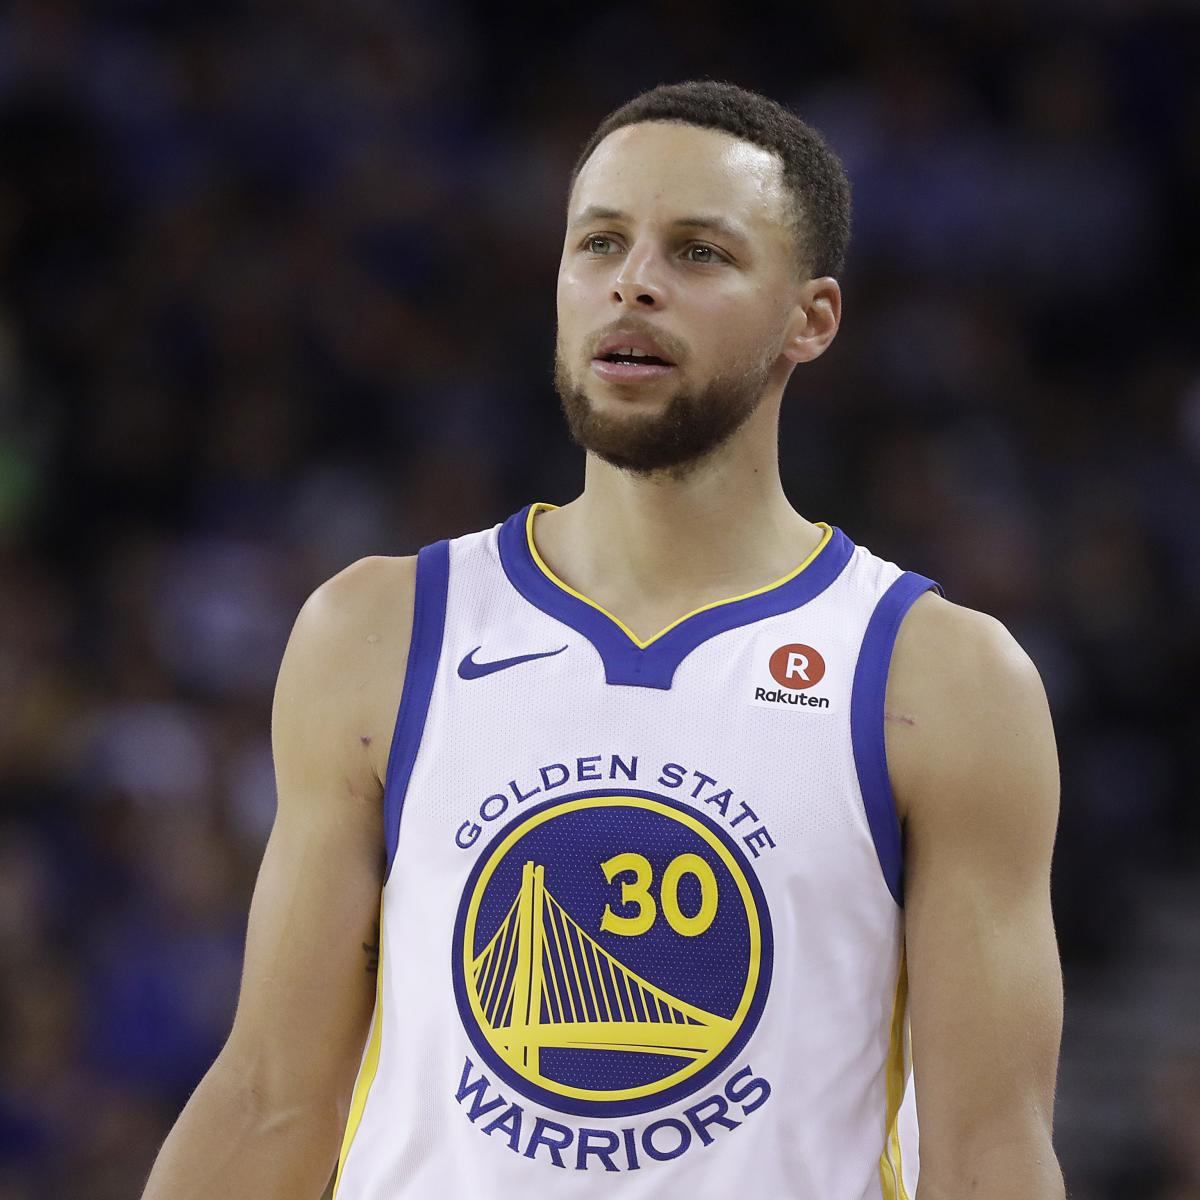 Warriors Record Without Stephen Curry 2017: Stephen Curry's Knee Injury Likely To Keep Him Out Of 1st